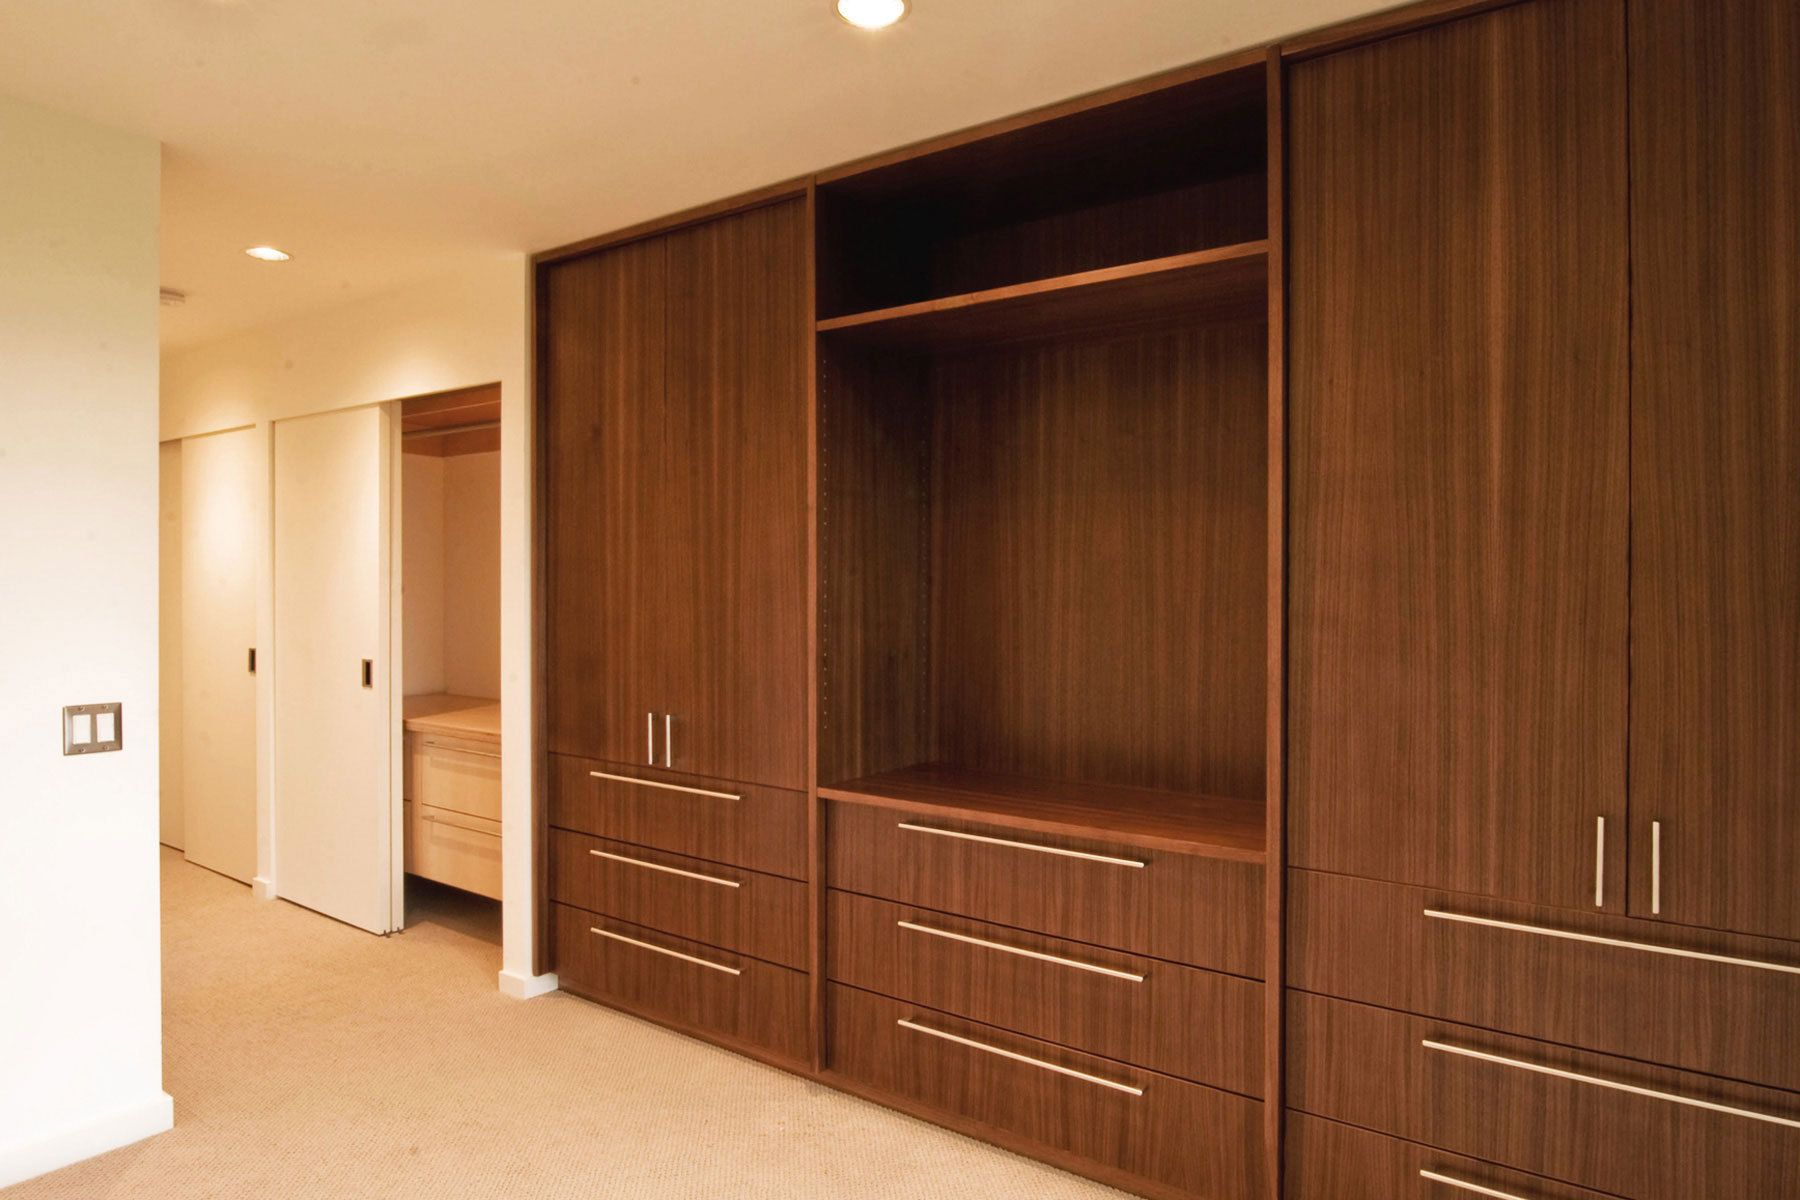 Bedroom Amazing Wooden Modern Bedroom Cabinets With Drawers And Bedroom Wall Cabinets Cupboard Design Bedroom Cabinets